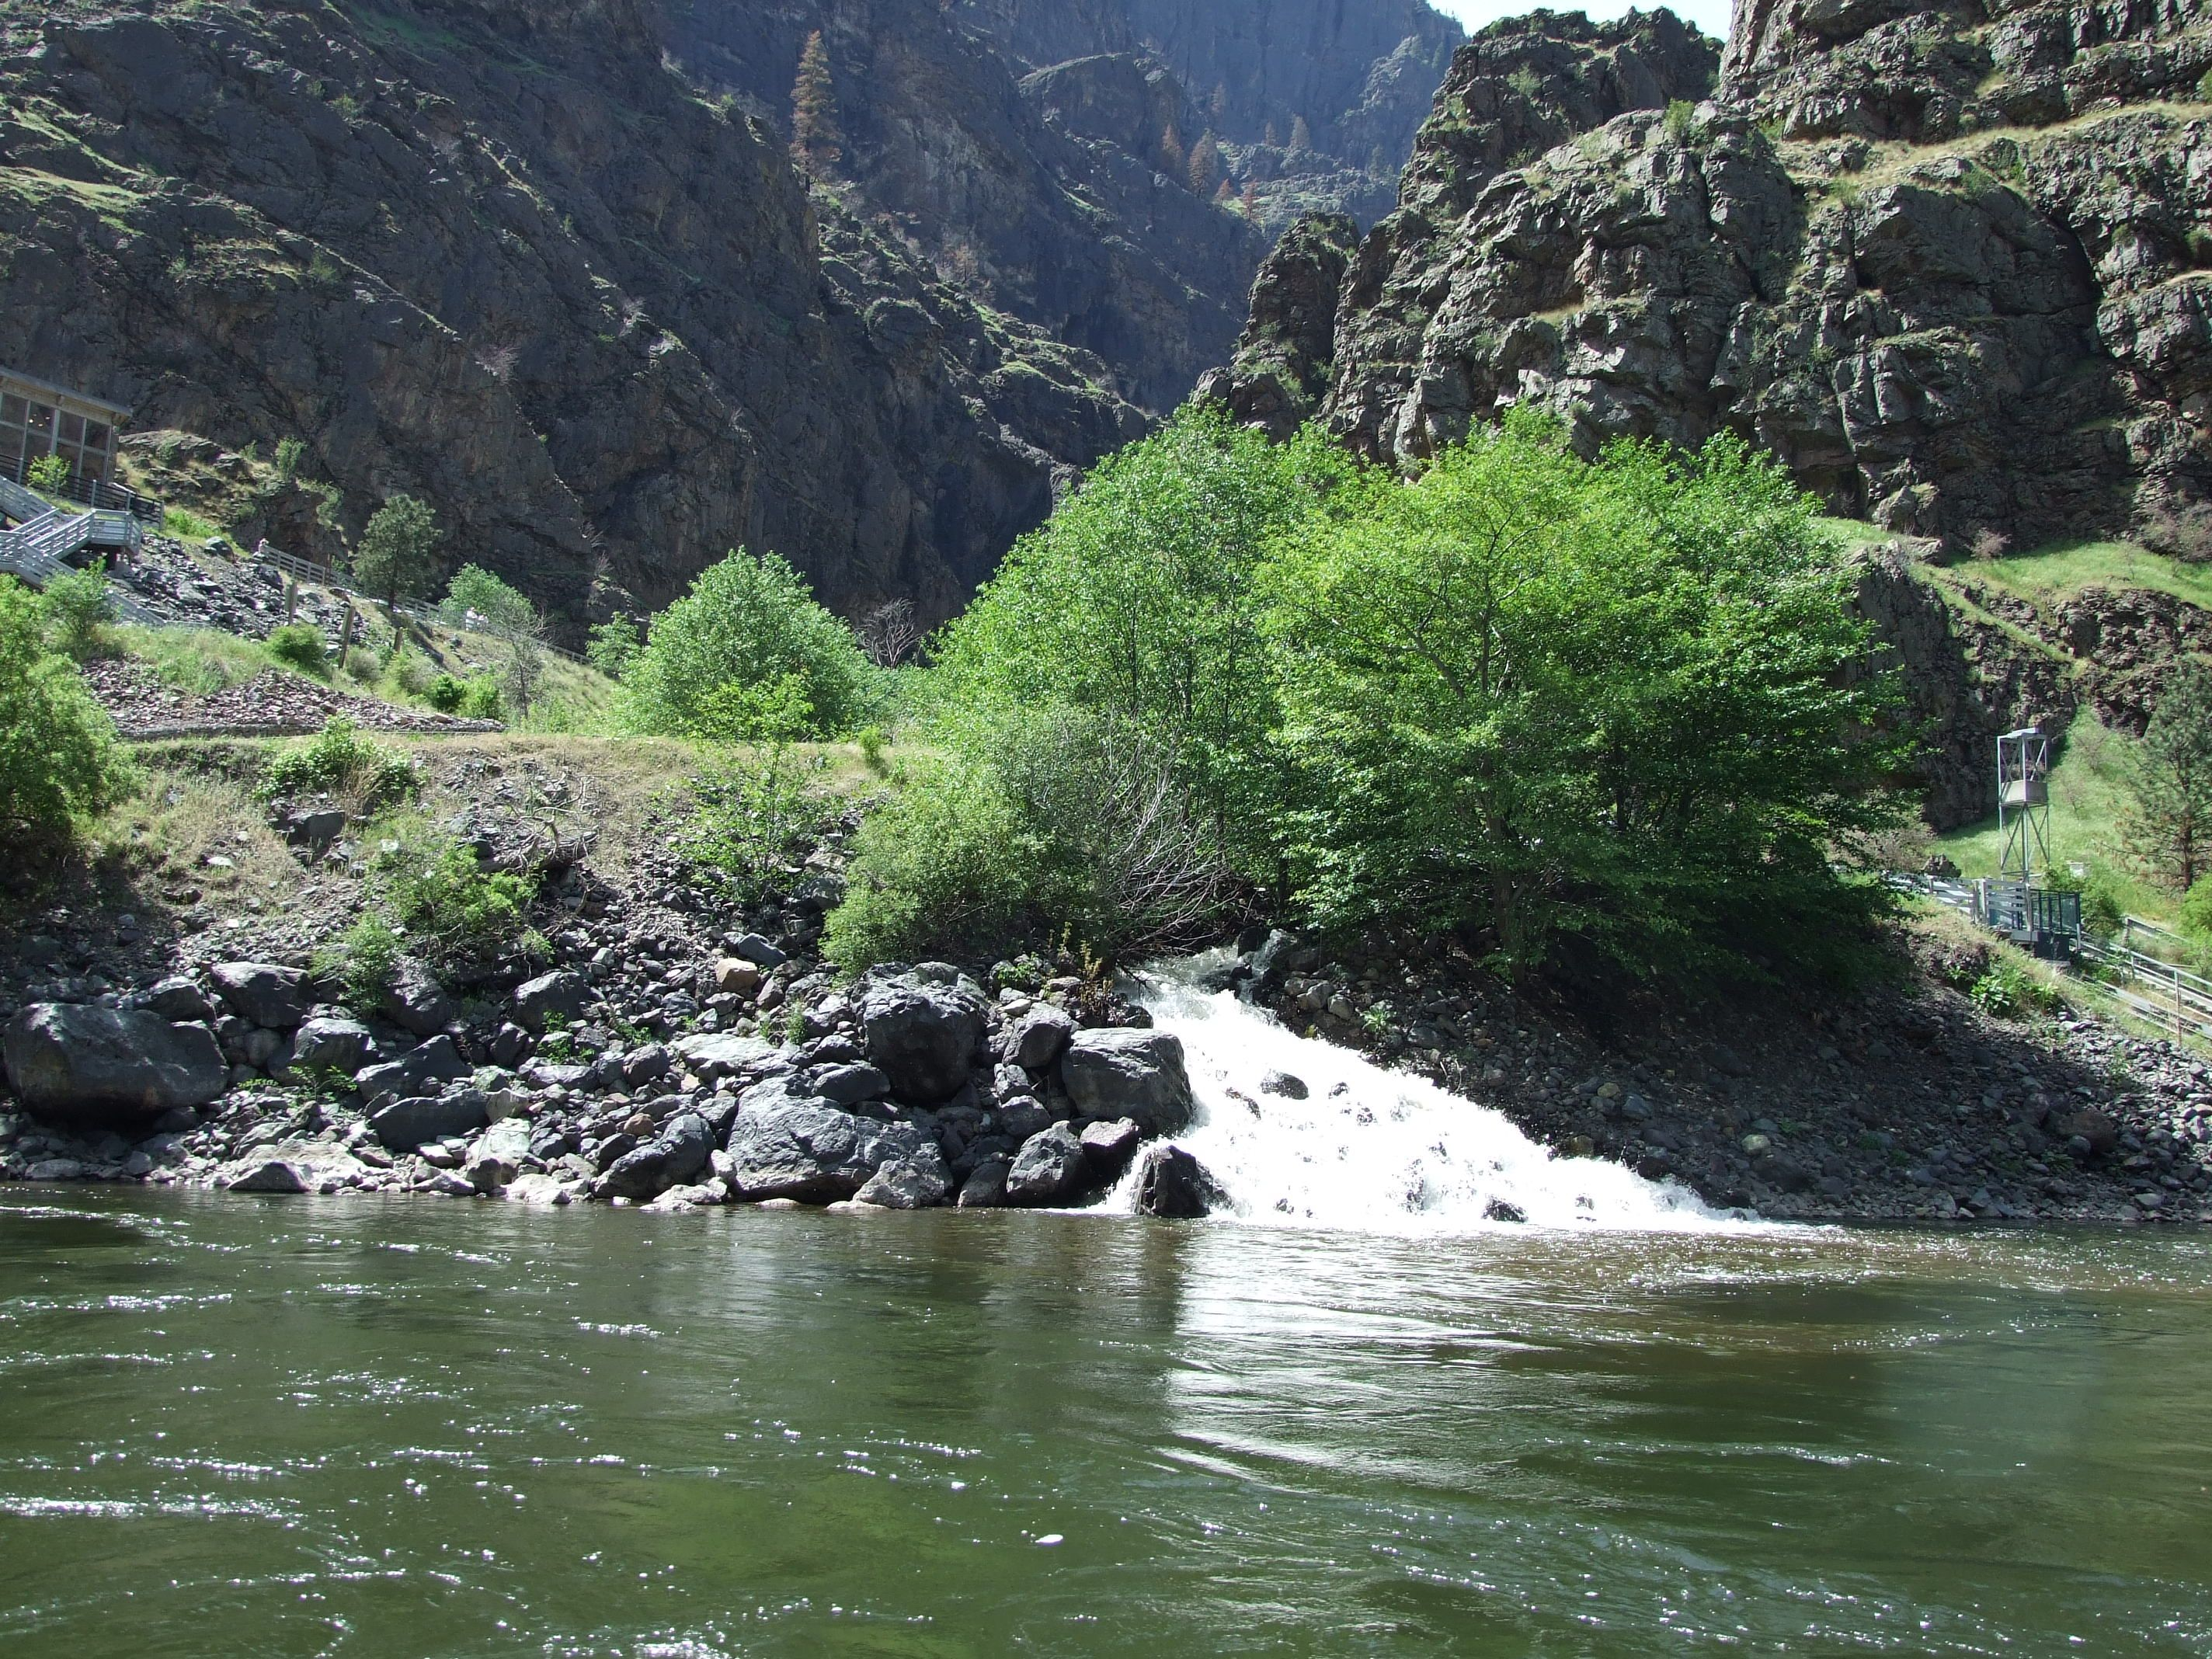 hells-canyon-pittsburg-to-dam-4-18-08-096